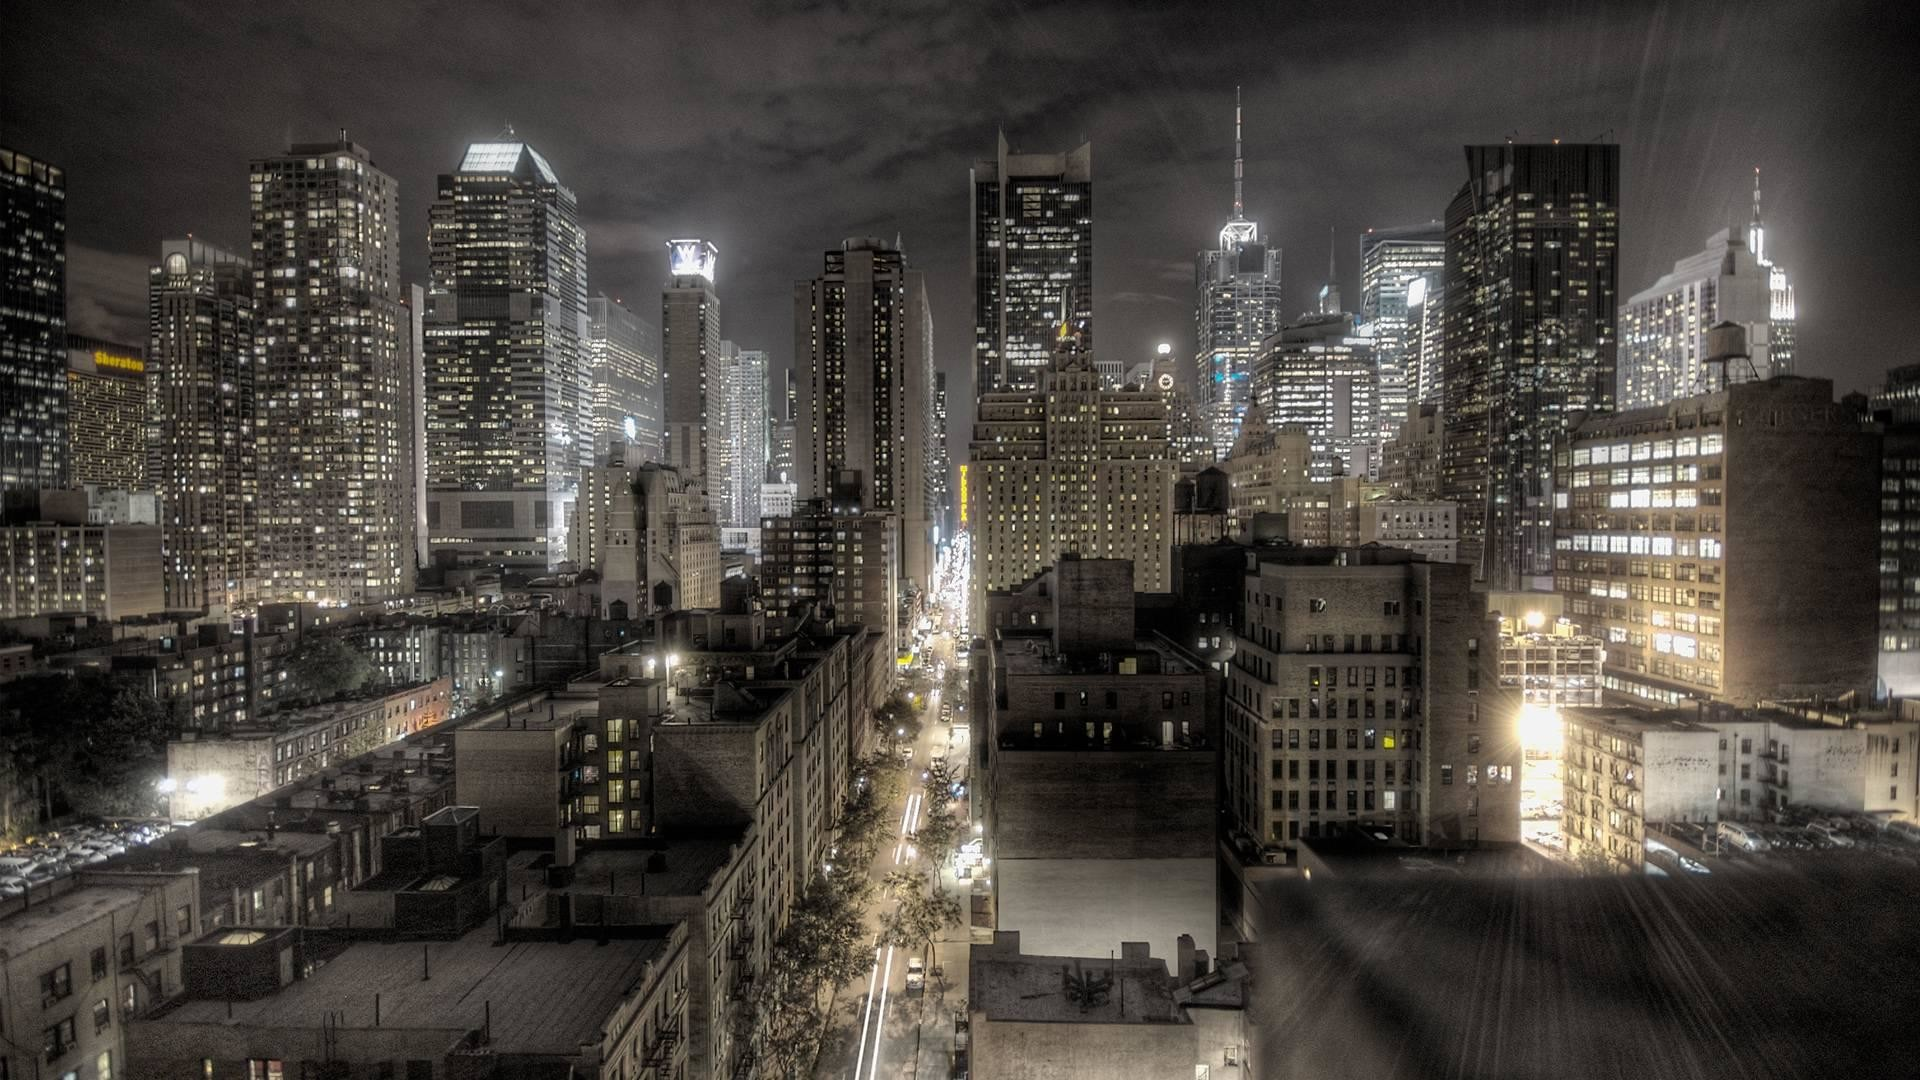 New York city HDR image hd resolution free desktop background .